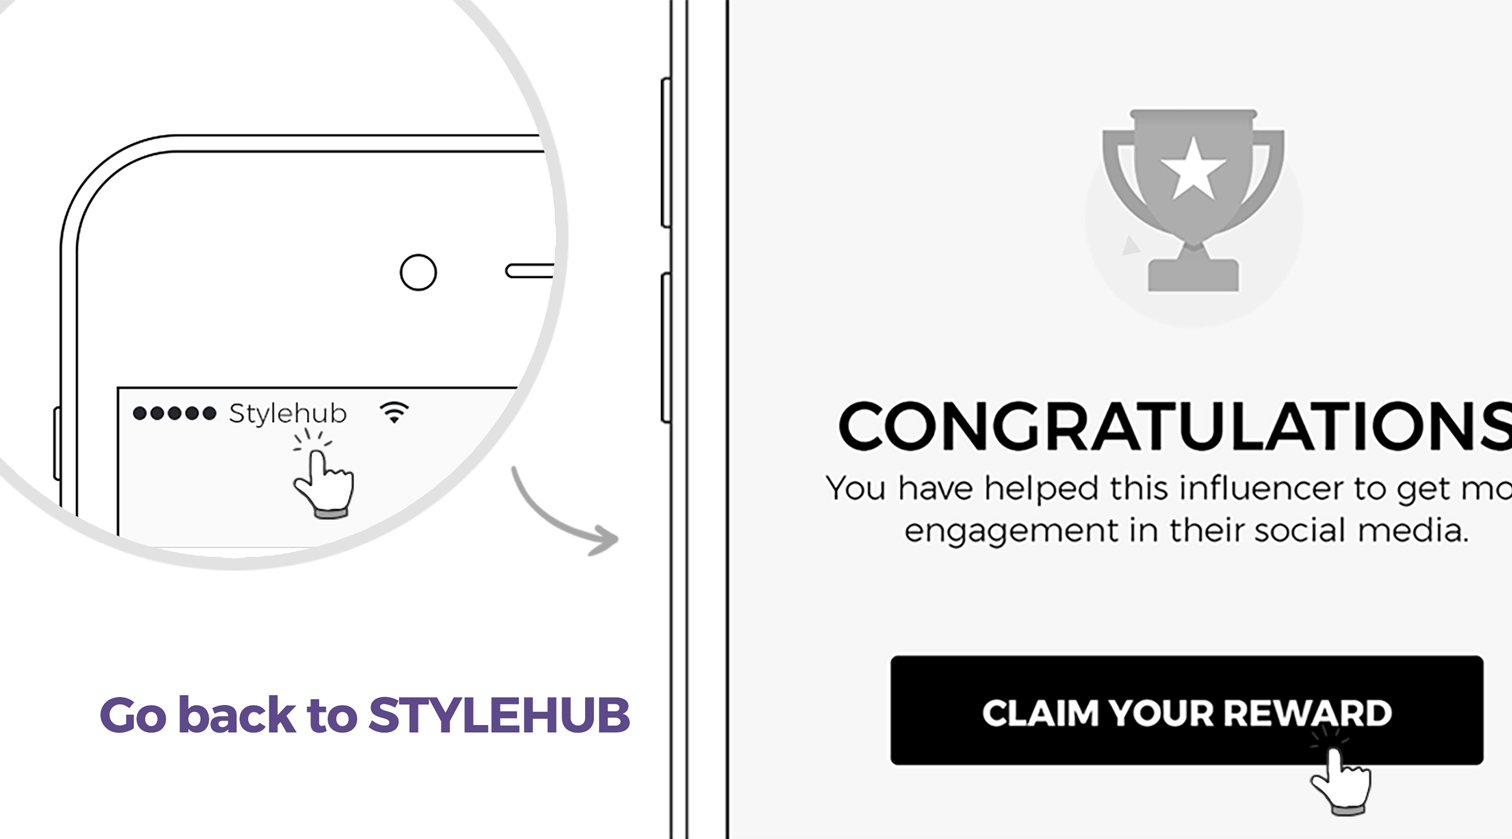 STYLEHUB get rewarded